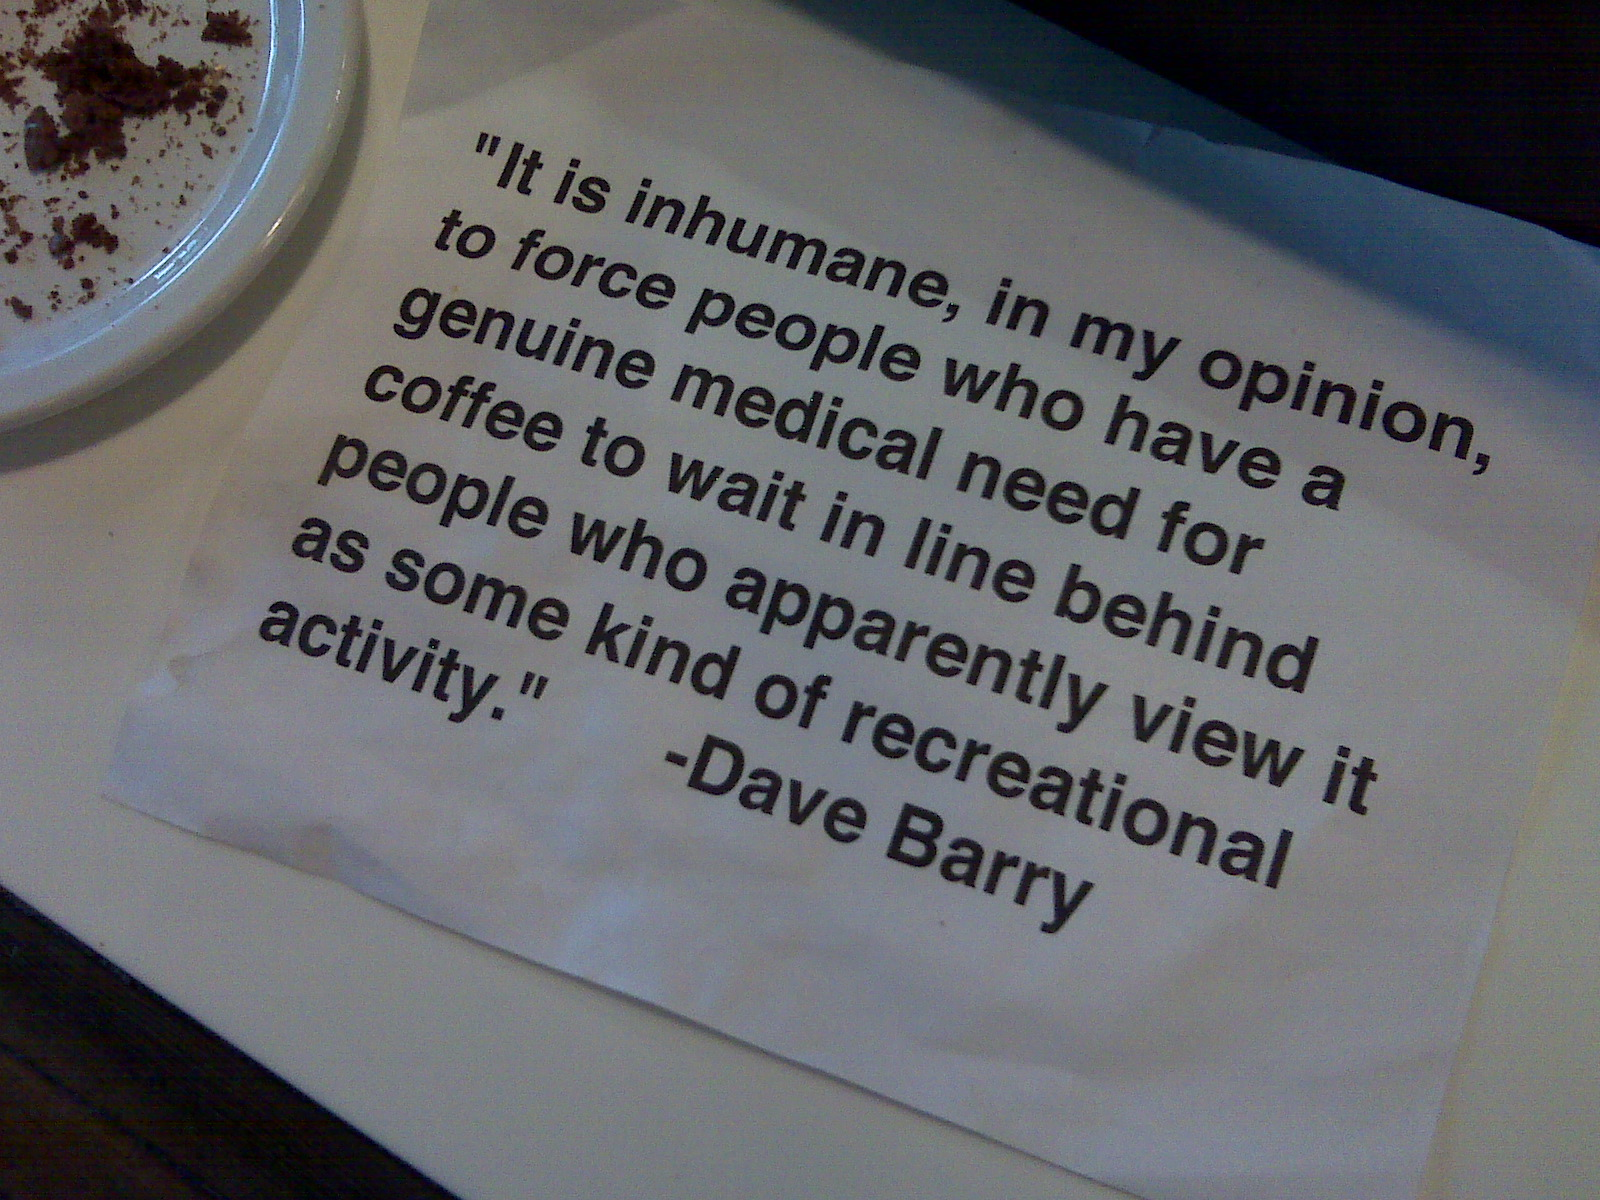 Coffee quote #4